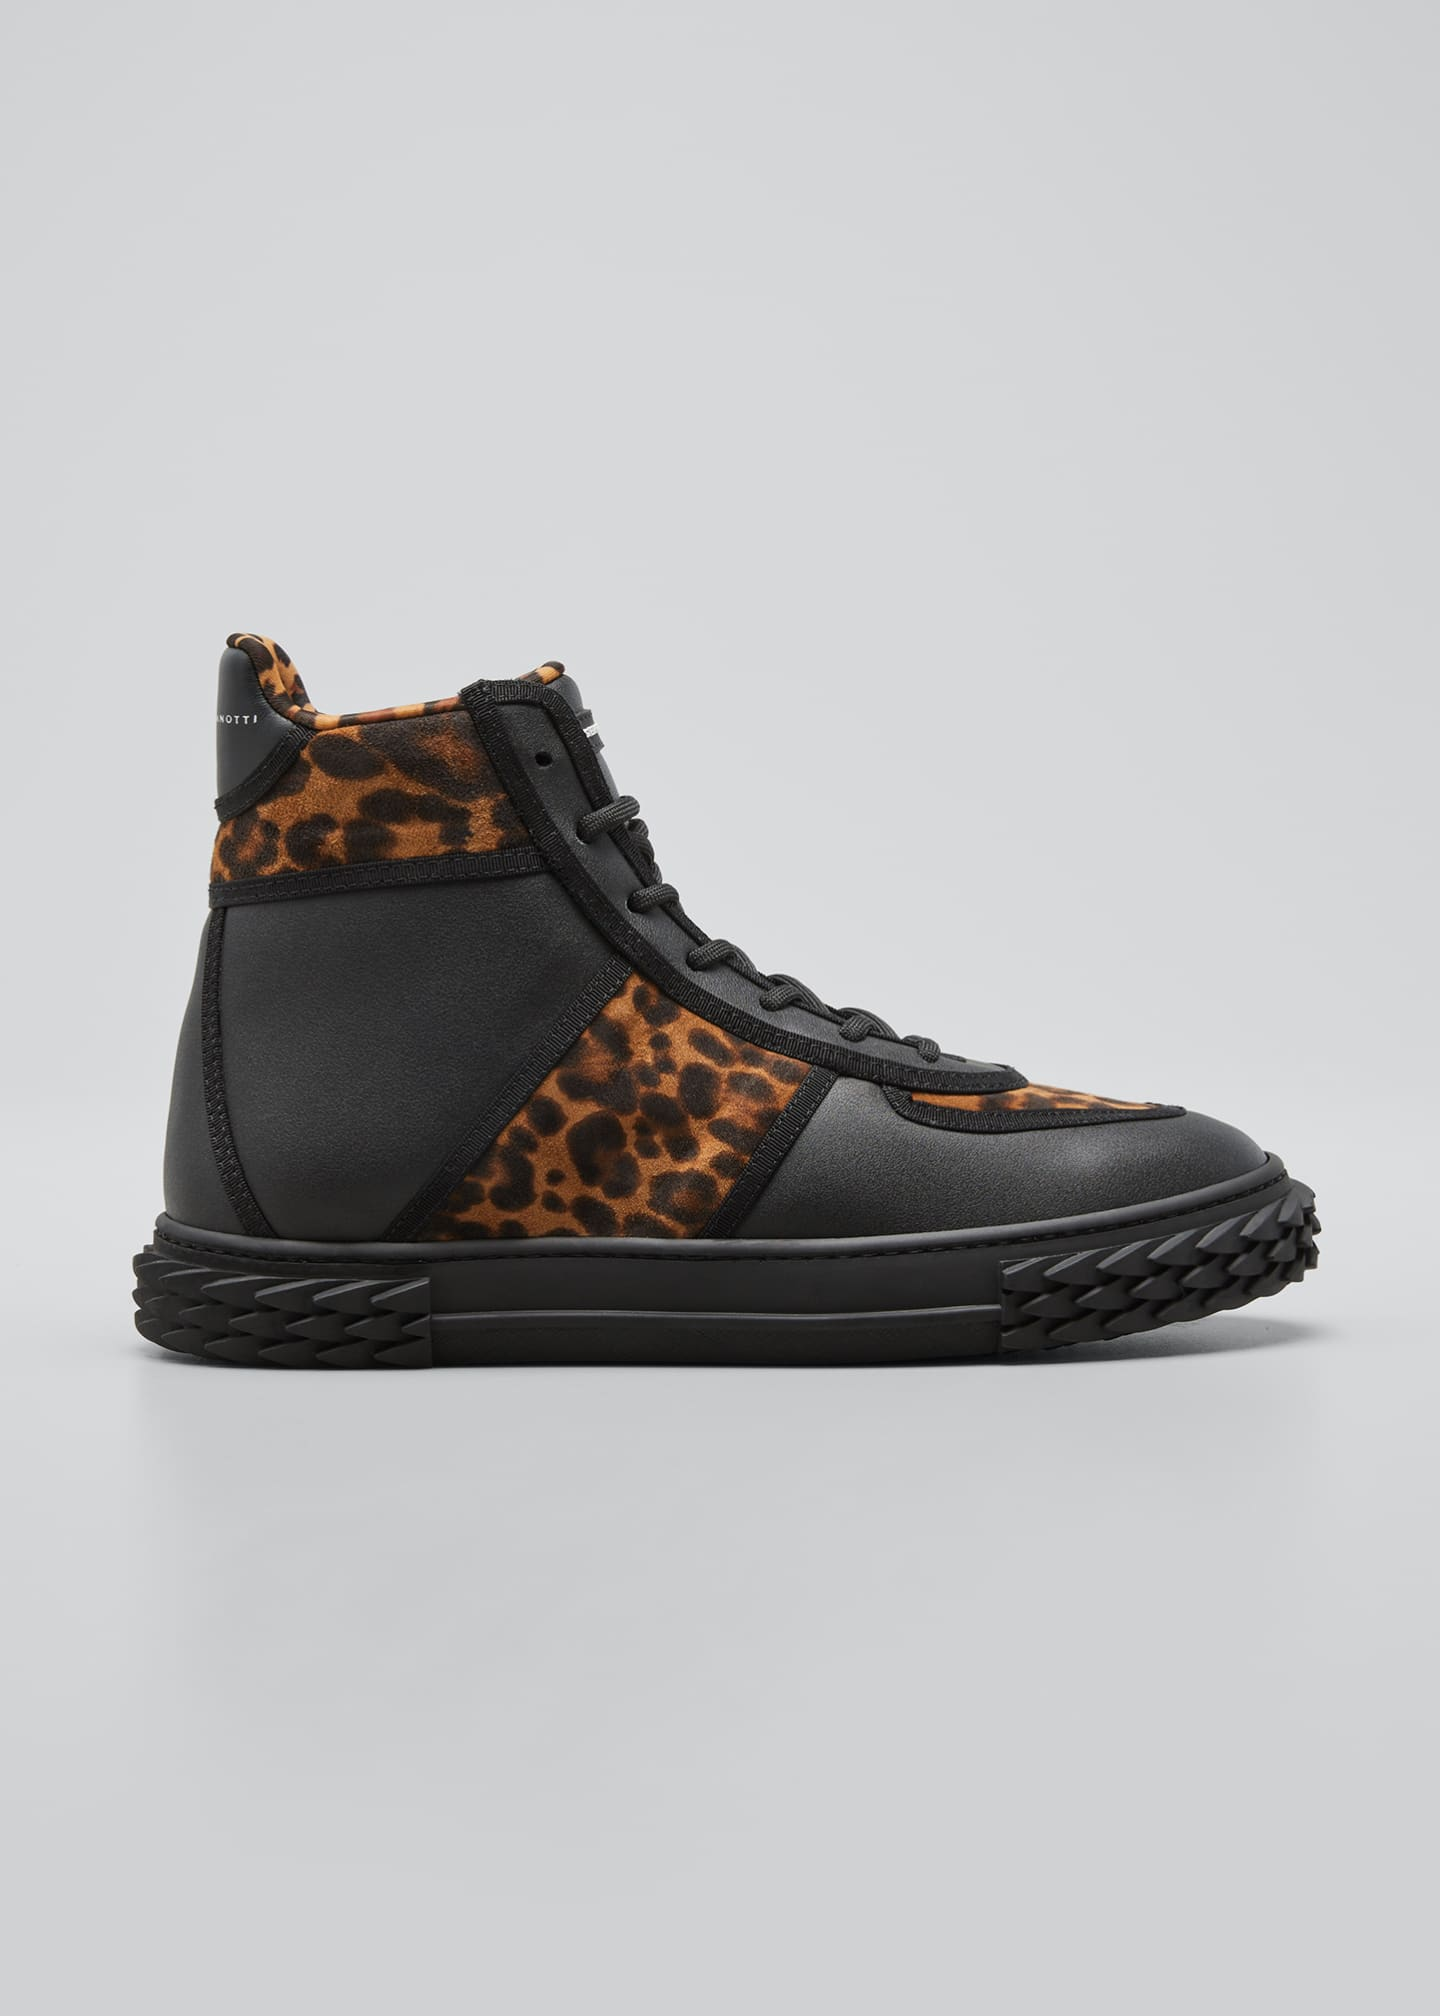 Image 1 of 3: Men's Blabber Leopard-Print Silk/Leather High-Top Sneakers